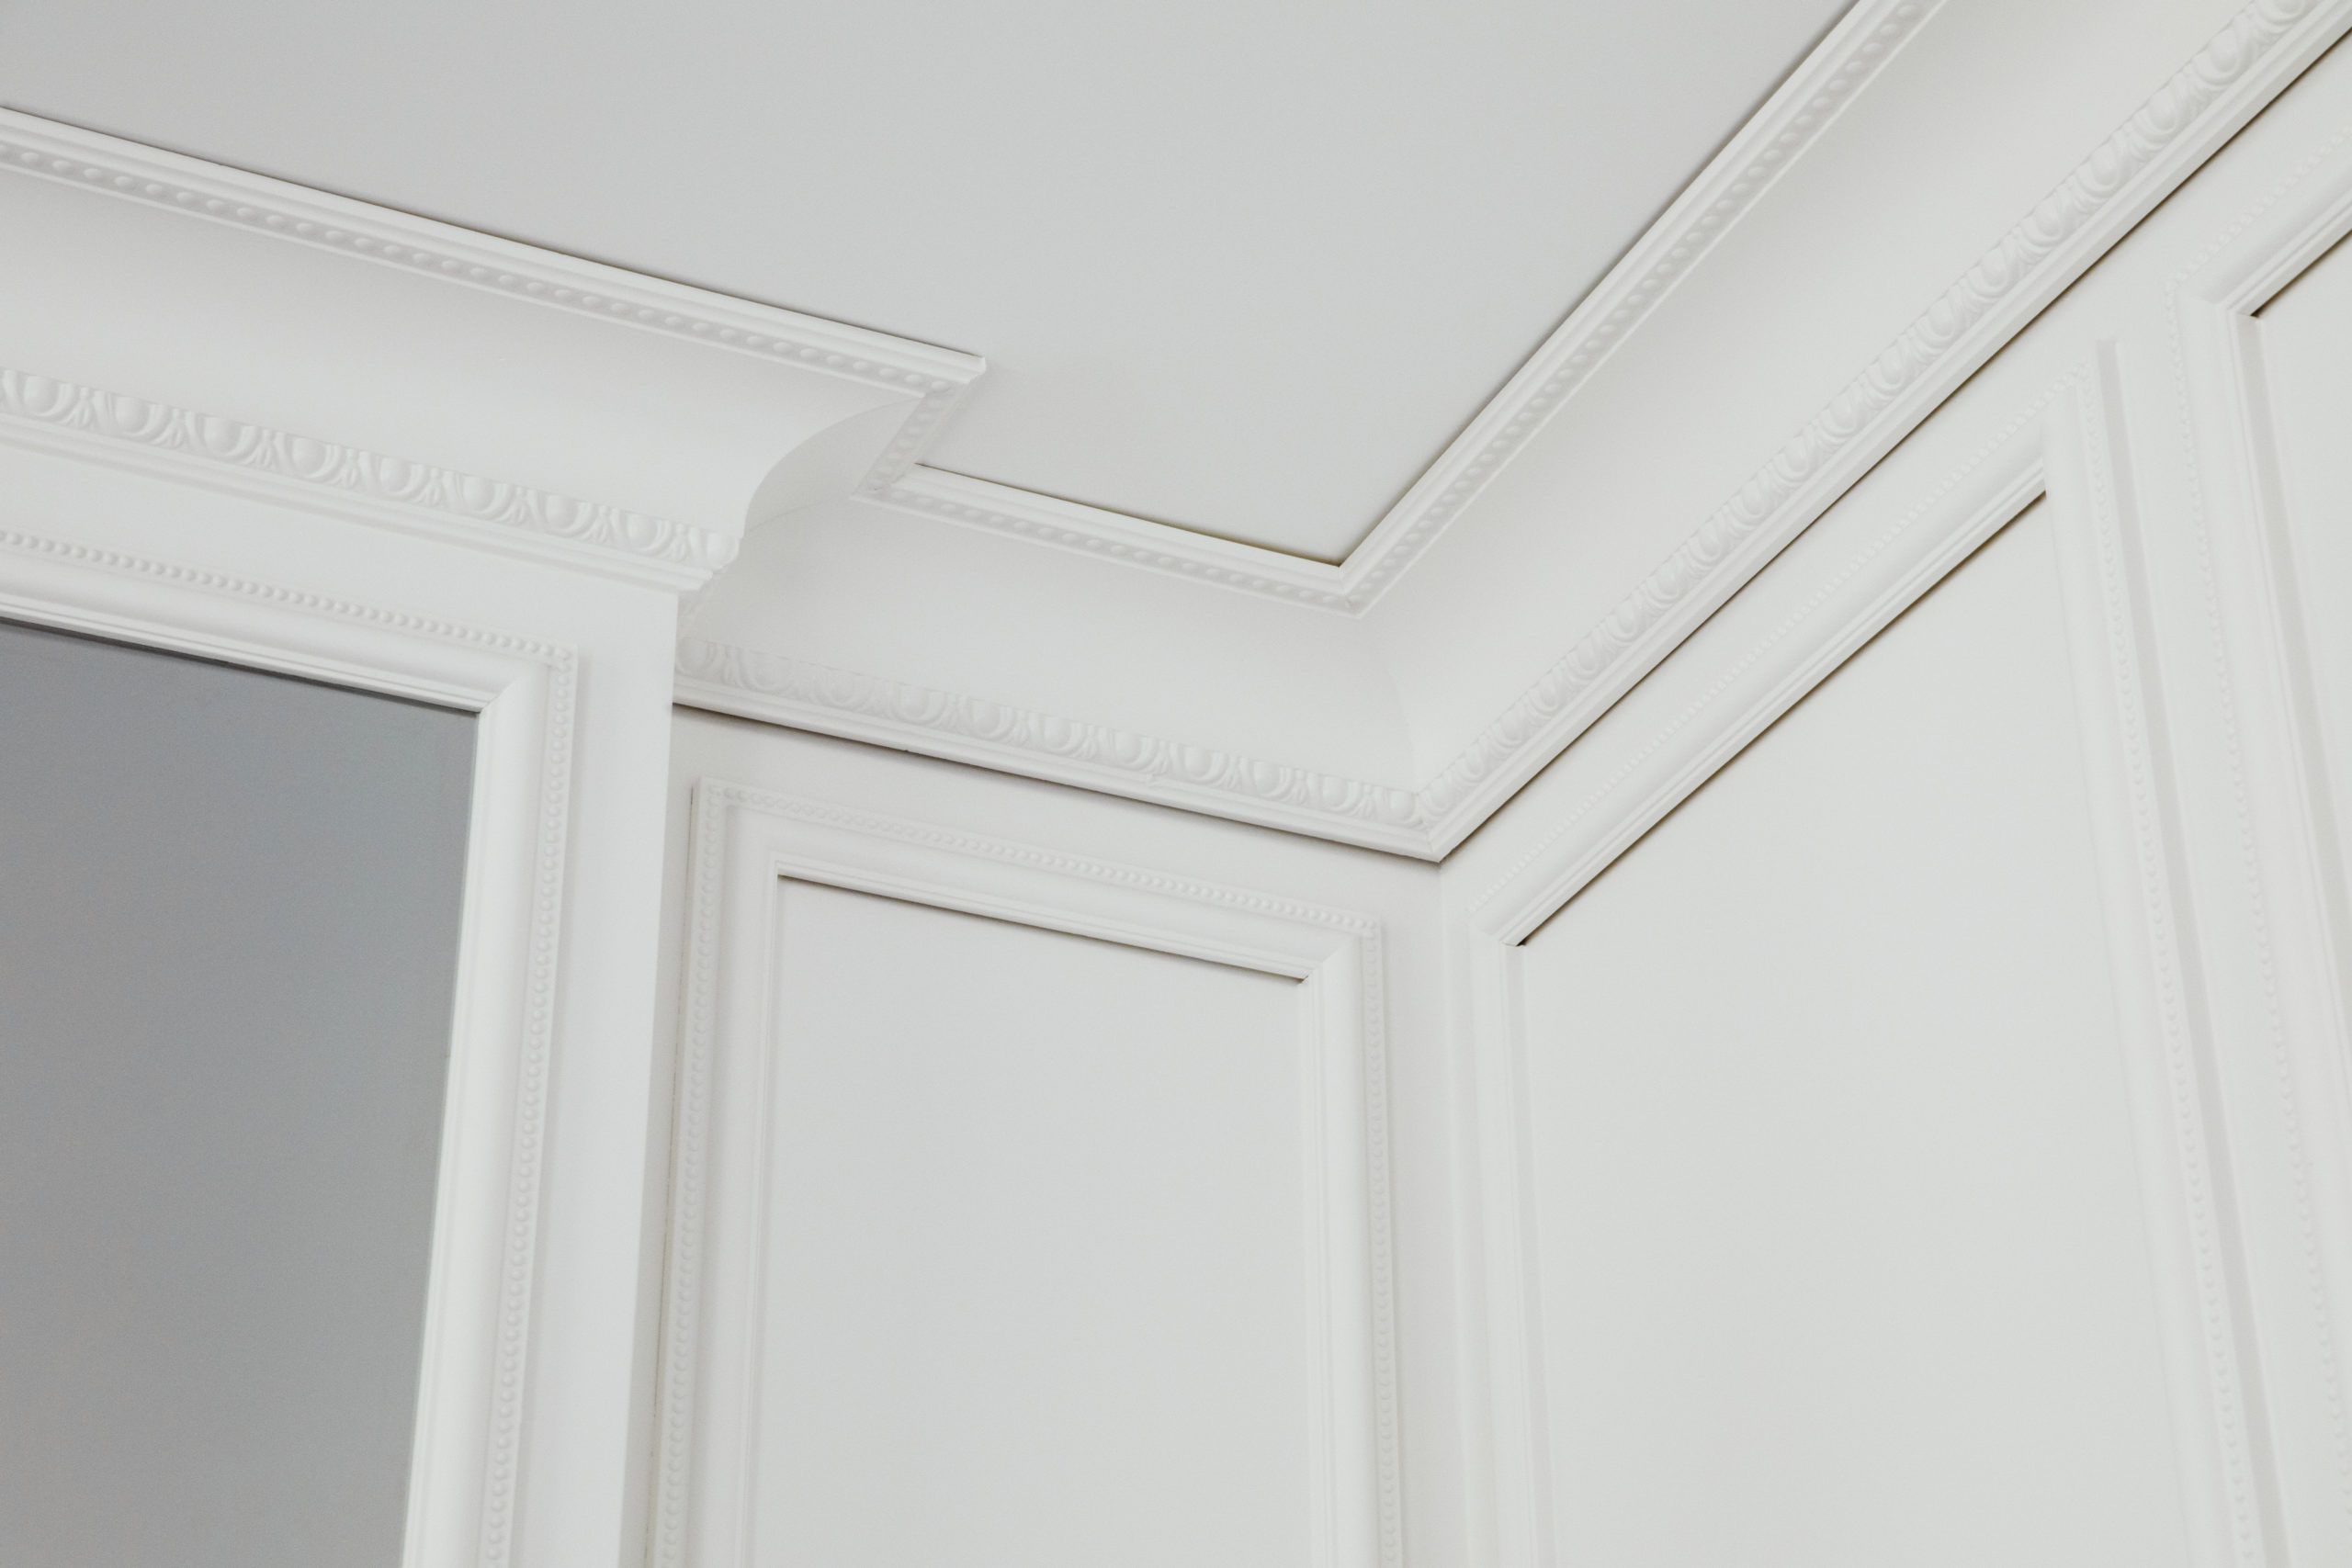 Britannia Hotel in Trondheim's Superior 1897 double room, styled by Metropolis Interior Architects. All rooms in the 1897 building have classic high ceilings, and moulded beautifully cornices, with Britannia's signature pattern.